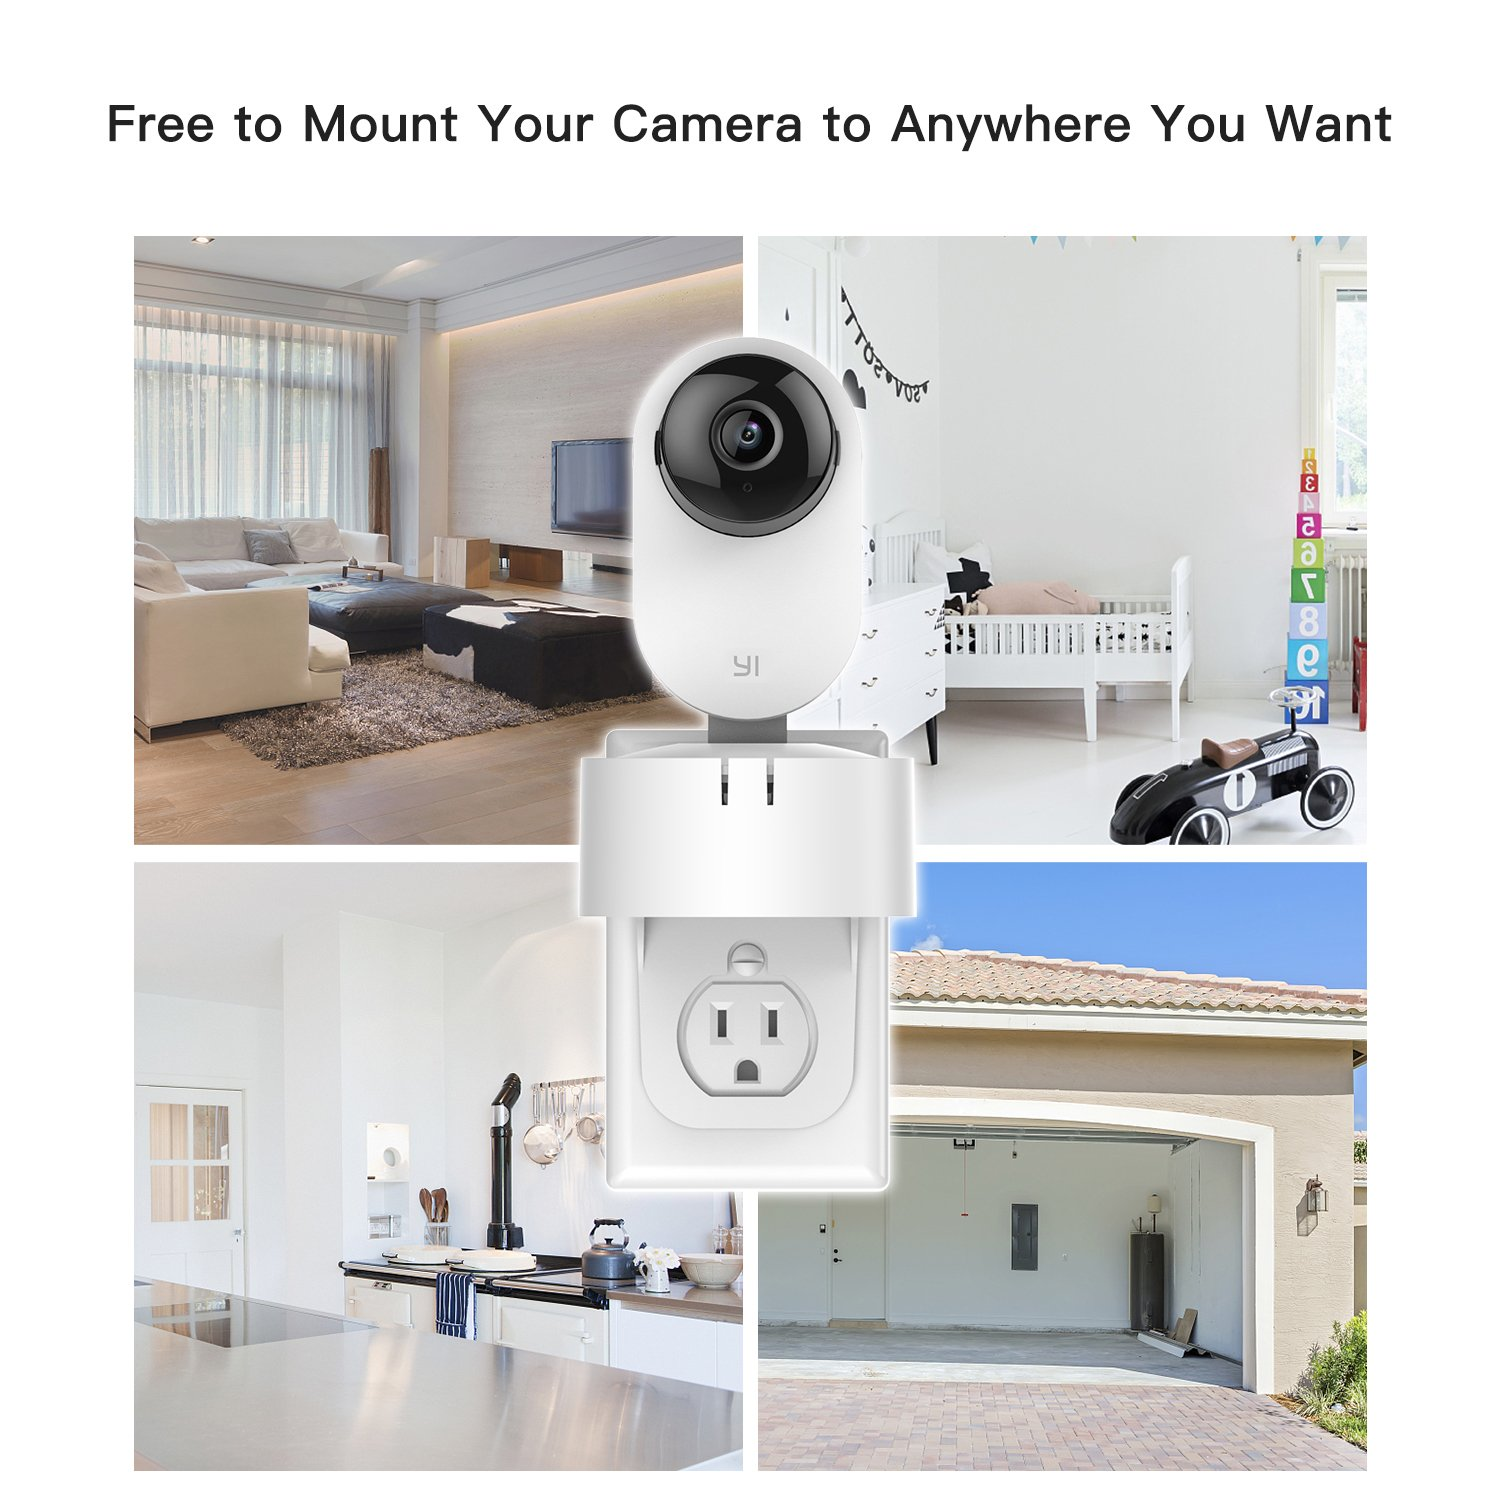 Yi Home Camera Ac Outlet Wall Mount 360 Degree Swivel Electric Plug Wiring Stand Holder Bracket For 1080p 720p No Messy Wires Or